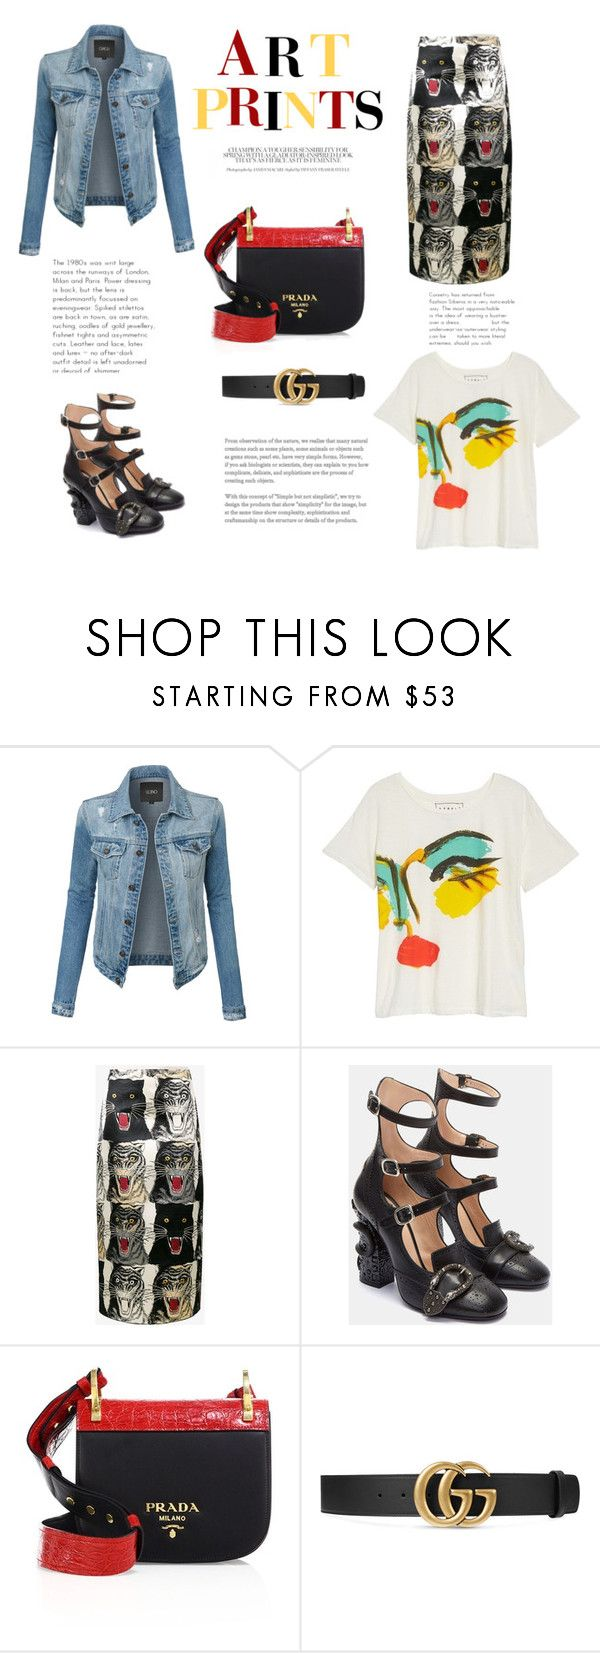 """Prints"" by krystalkm-7 ❤ liked on Polyvore featuring LE3NO, Junk Food Clothing, Gucci and Prada"